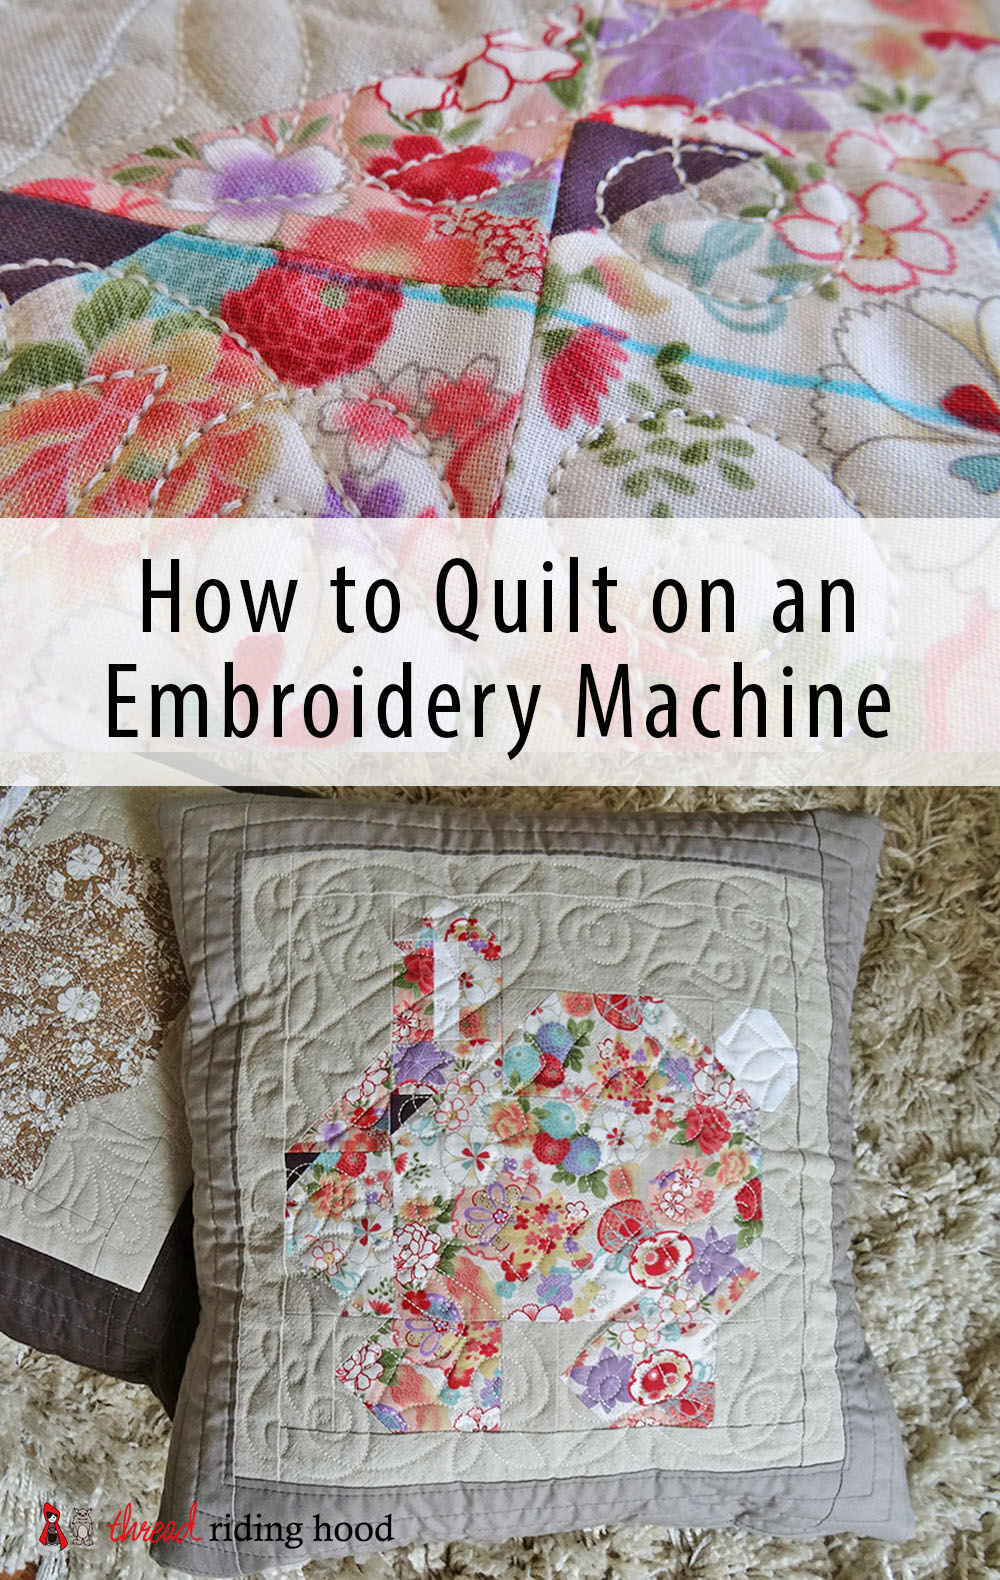 How to Quilt on an Embroidery Machine